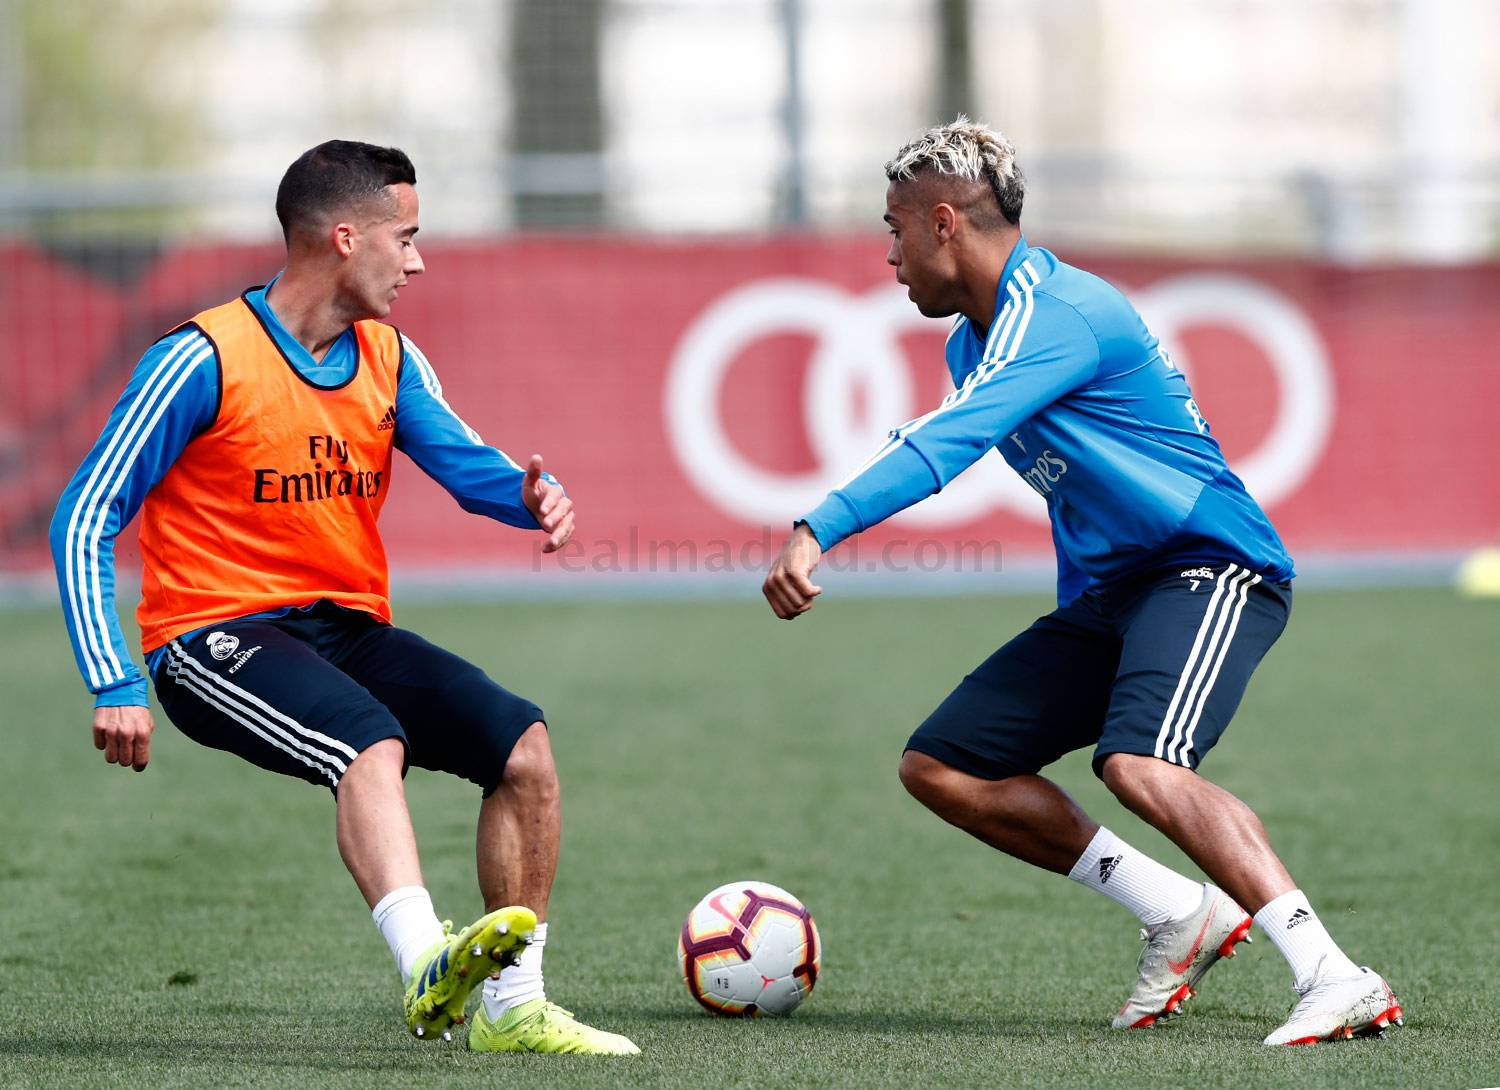 Real Madrid - Entrenamiento del Real Madrid - 02-04-2019